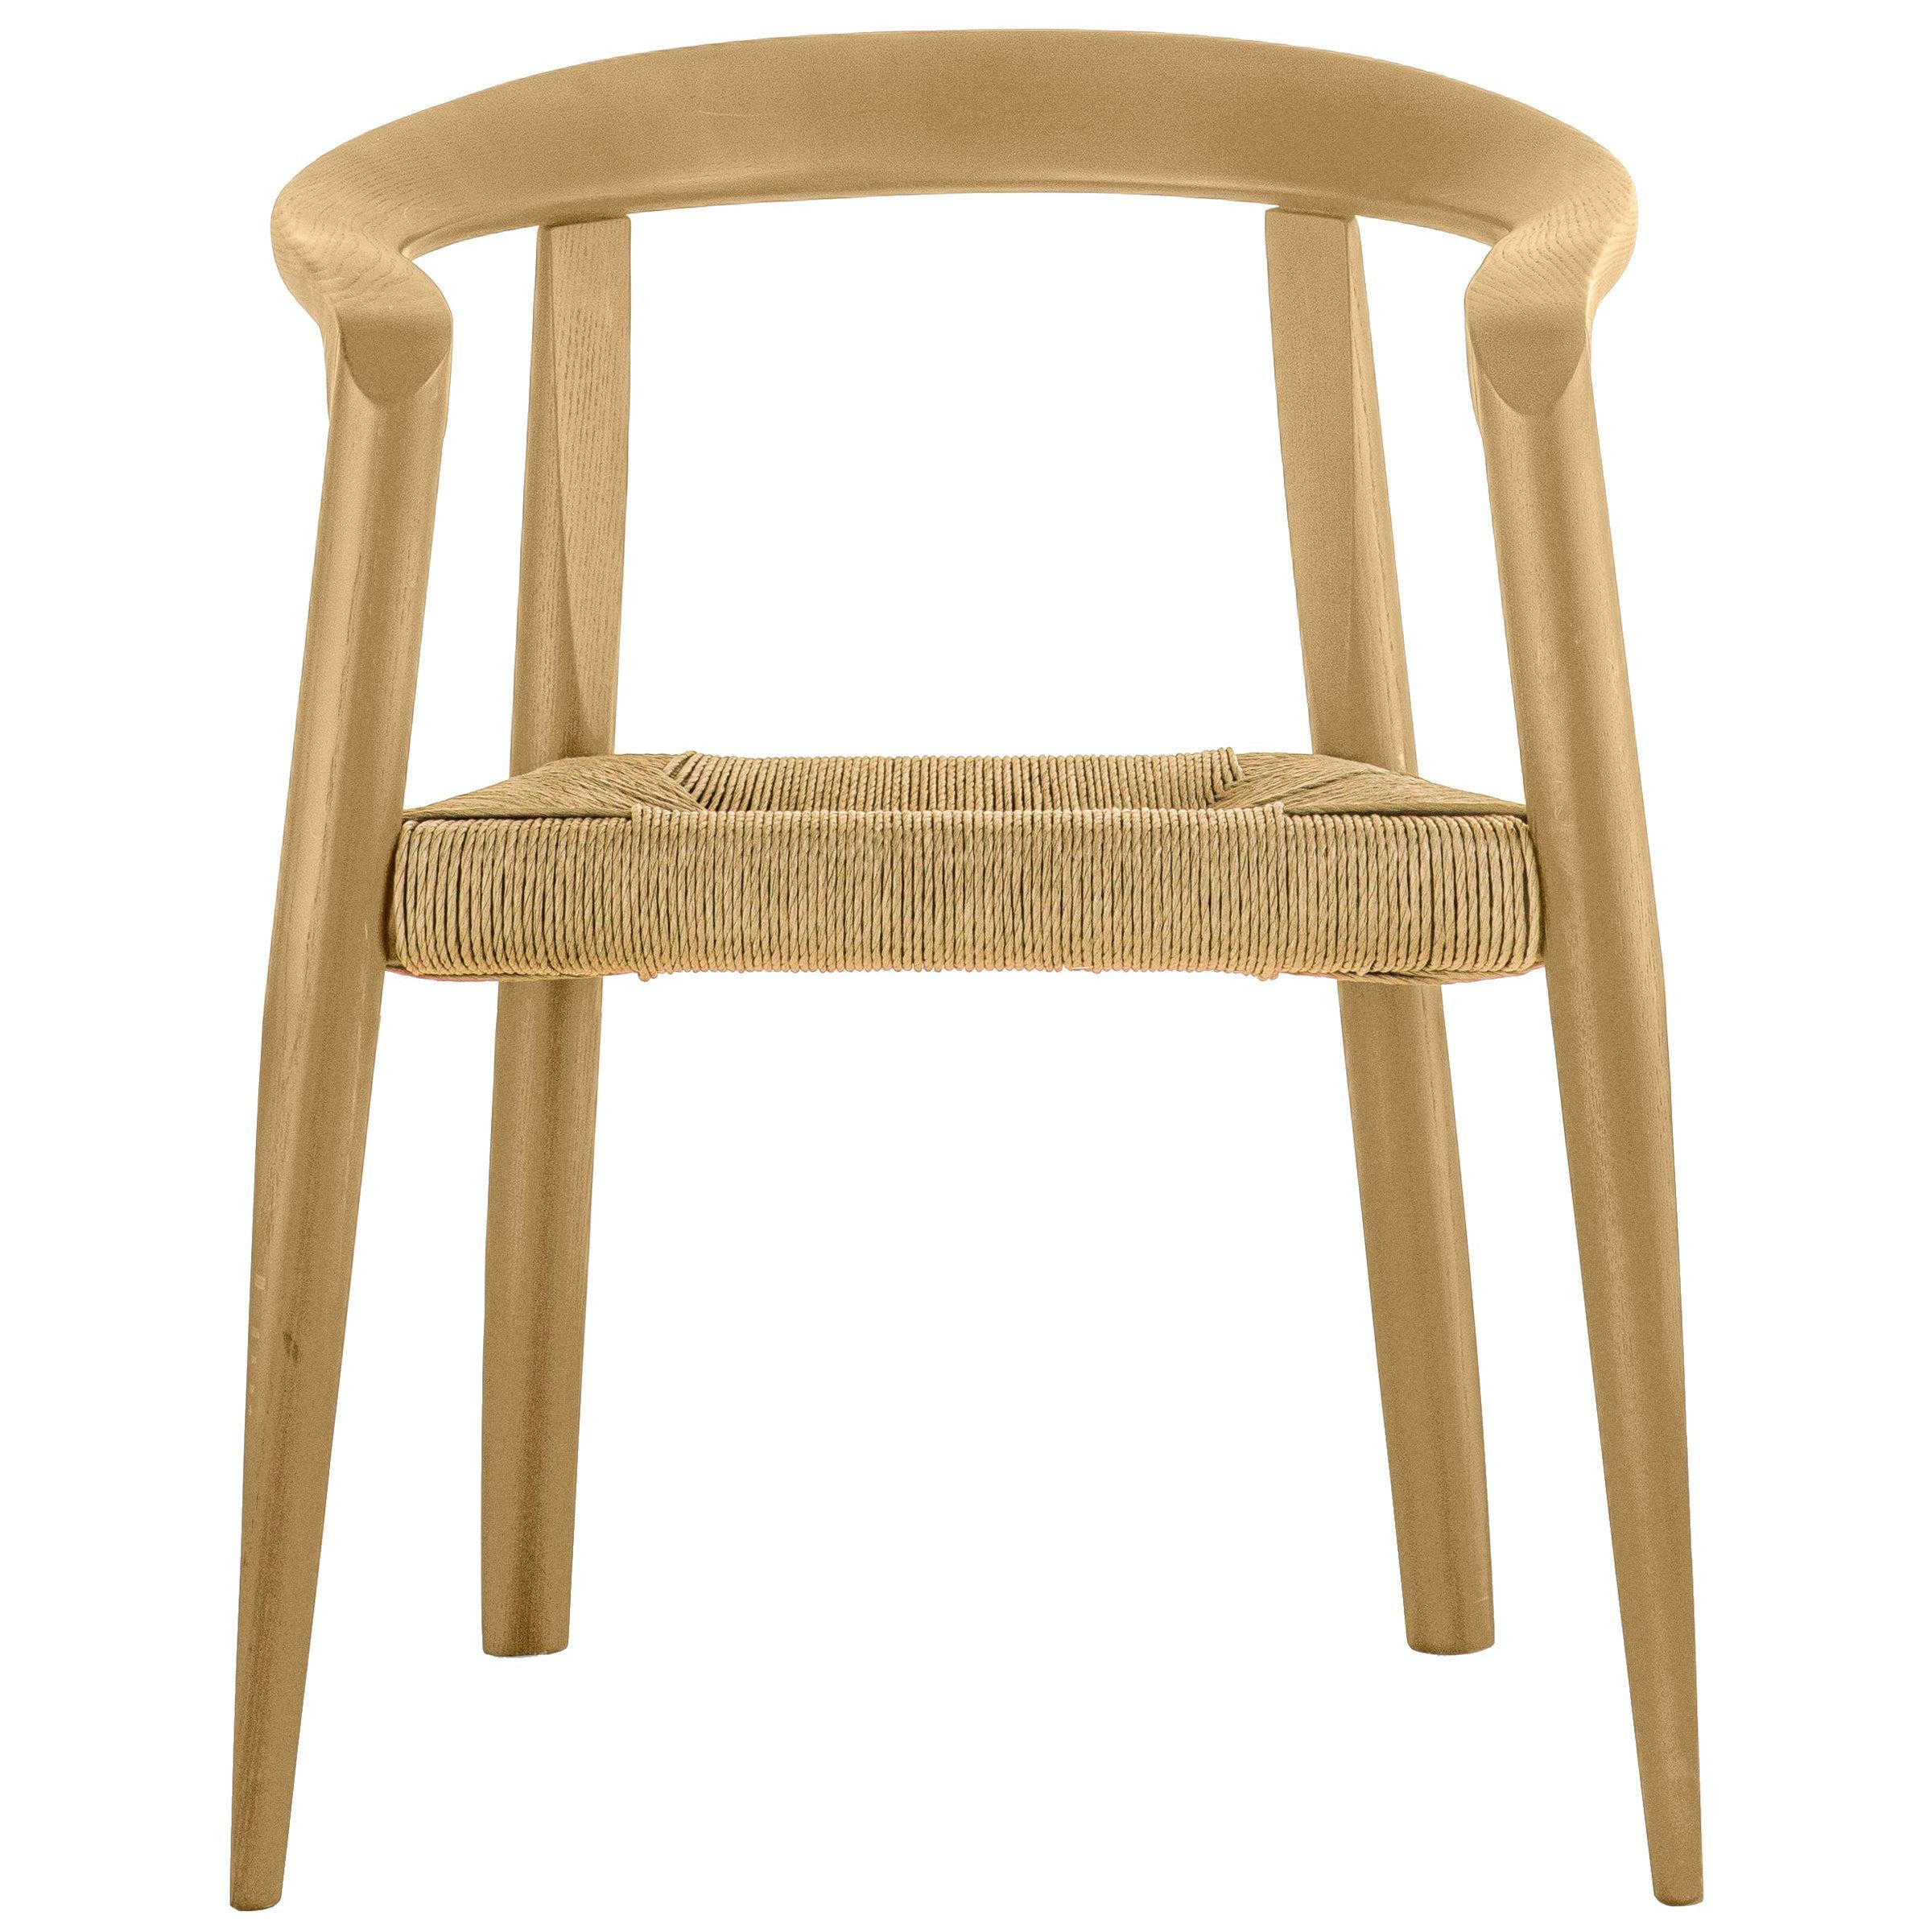 Molteni&C Miss Woven Natural Ashwood Ercu Papercord Dining Chair, Tobia Scarpa